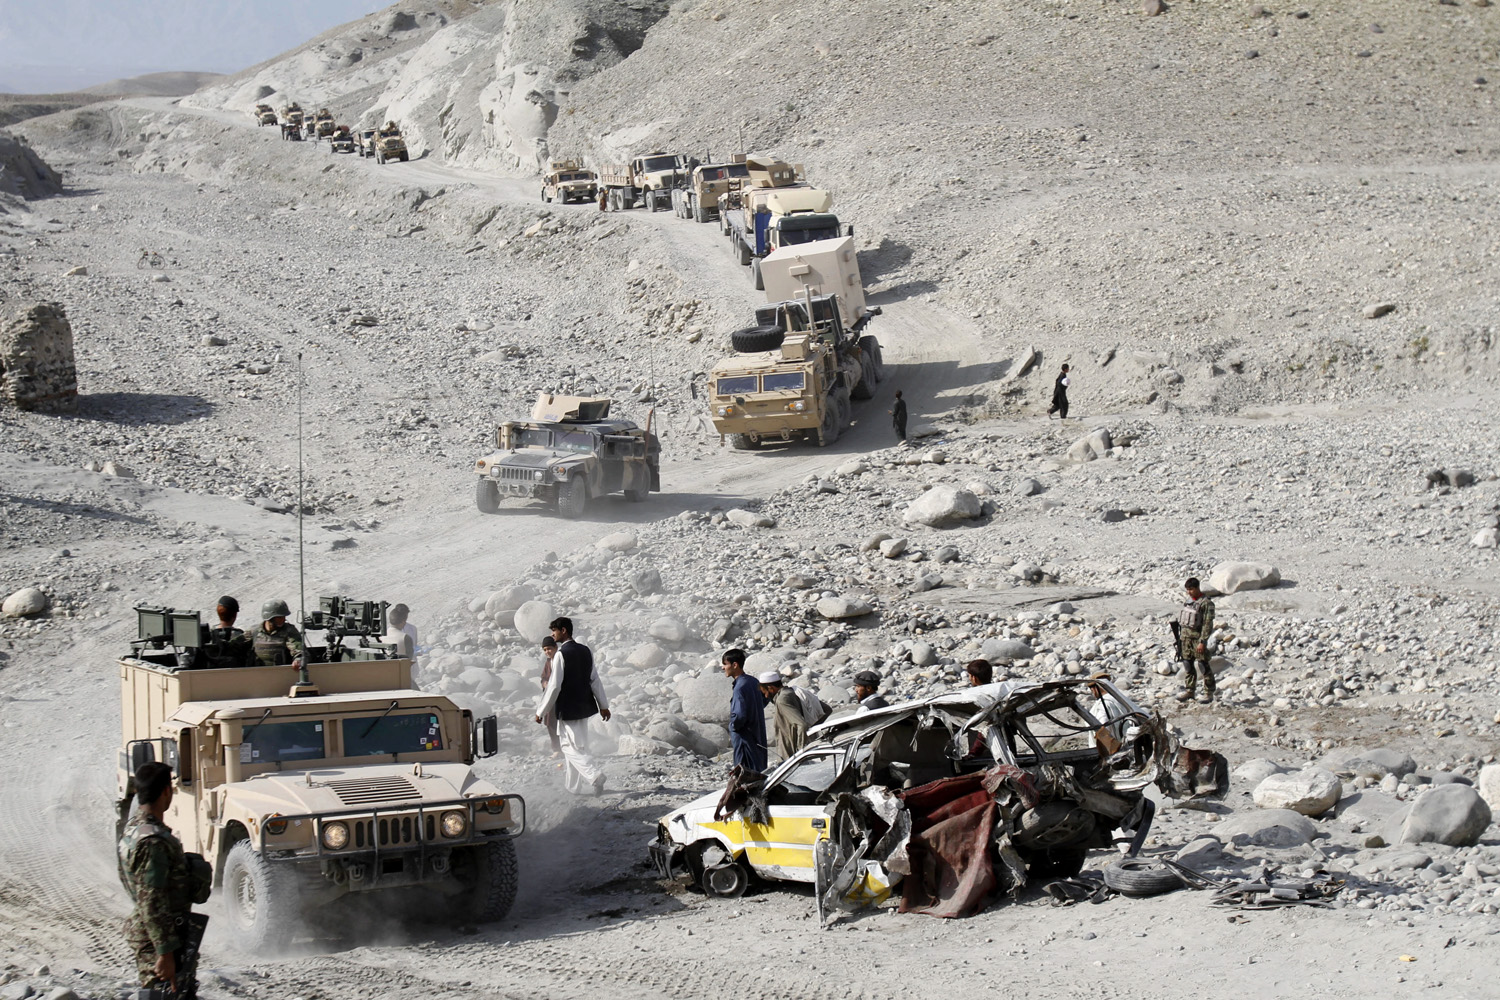 October 28, 2011. Afghan security men stand next to the wreckage of a civilian car which was hit by a roadside bomb as a U.S.-led coalition convoy moves by, in Nangarhar province, east of Kabul, Afghanistan.